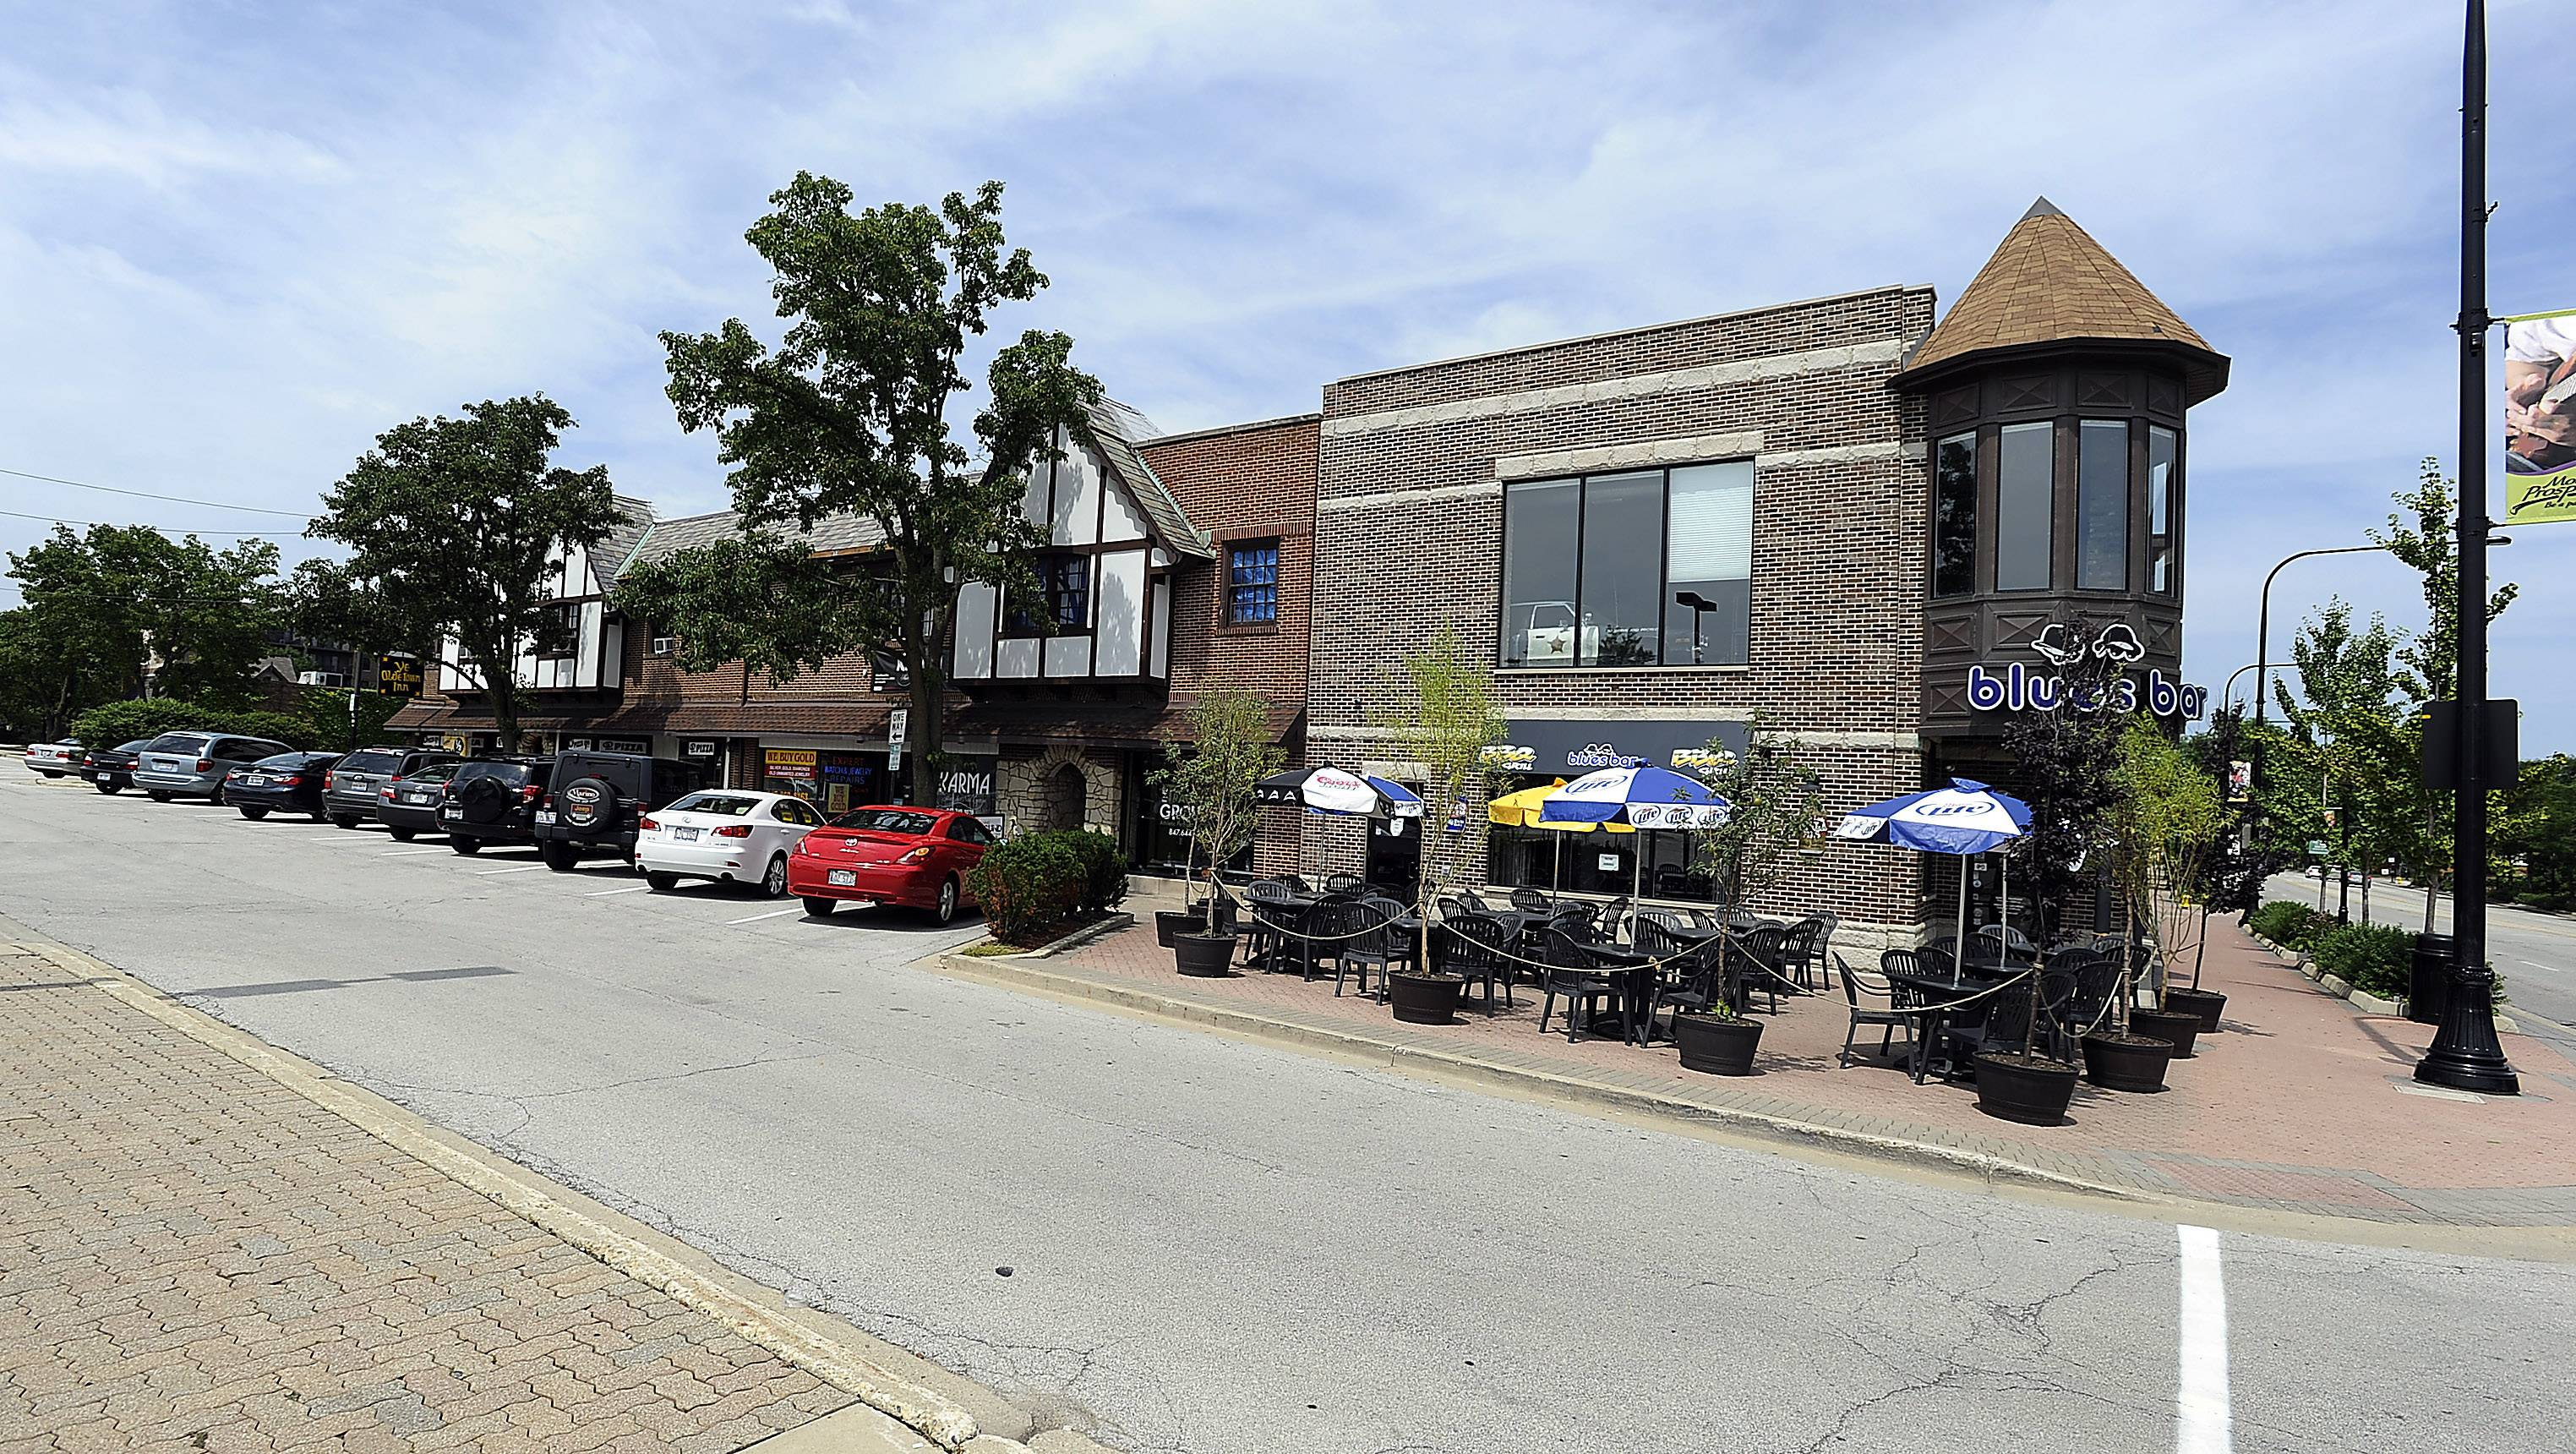 Mount Prospect officials suspended the liquor license of Blues Bar in the village's downtown after the business' state license expired last week. The state license cannot be renewed, officials said, until the business' owners pay overdue taxes.